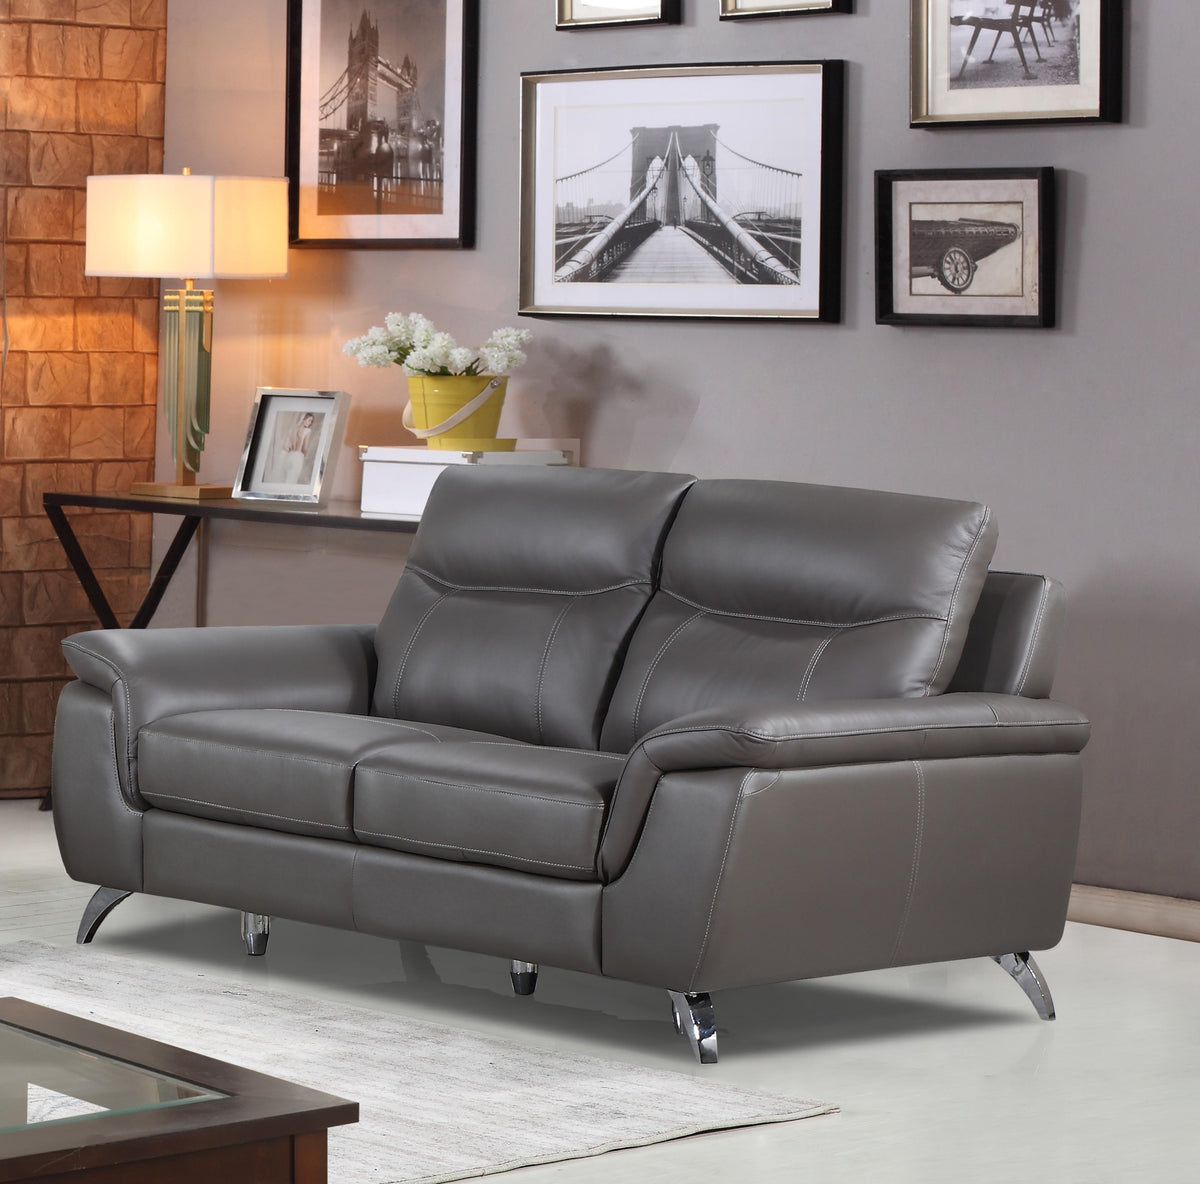 Cortesi Home Chicago Genuine Leather Loveseat, Dark Grey 66""